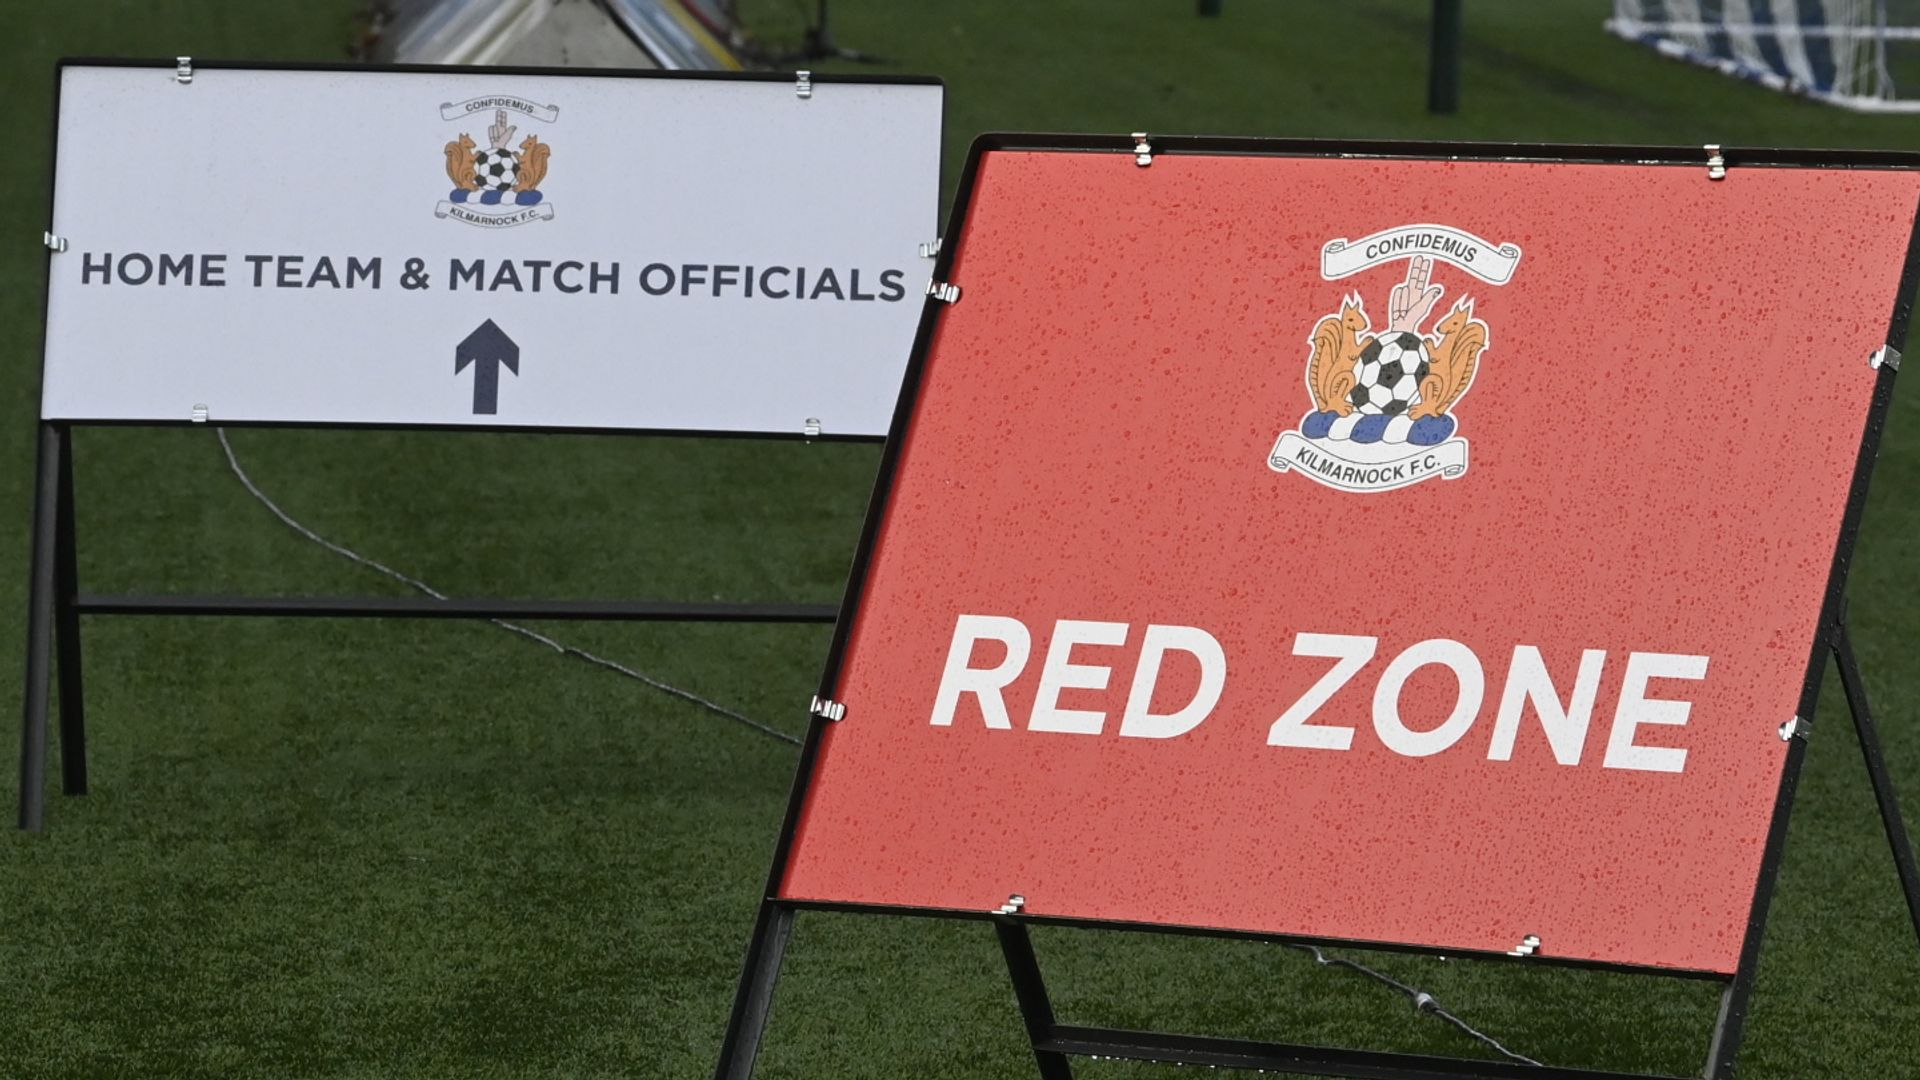 Top Scottish clubs asked to review protocols